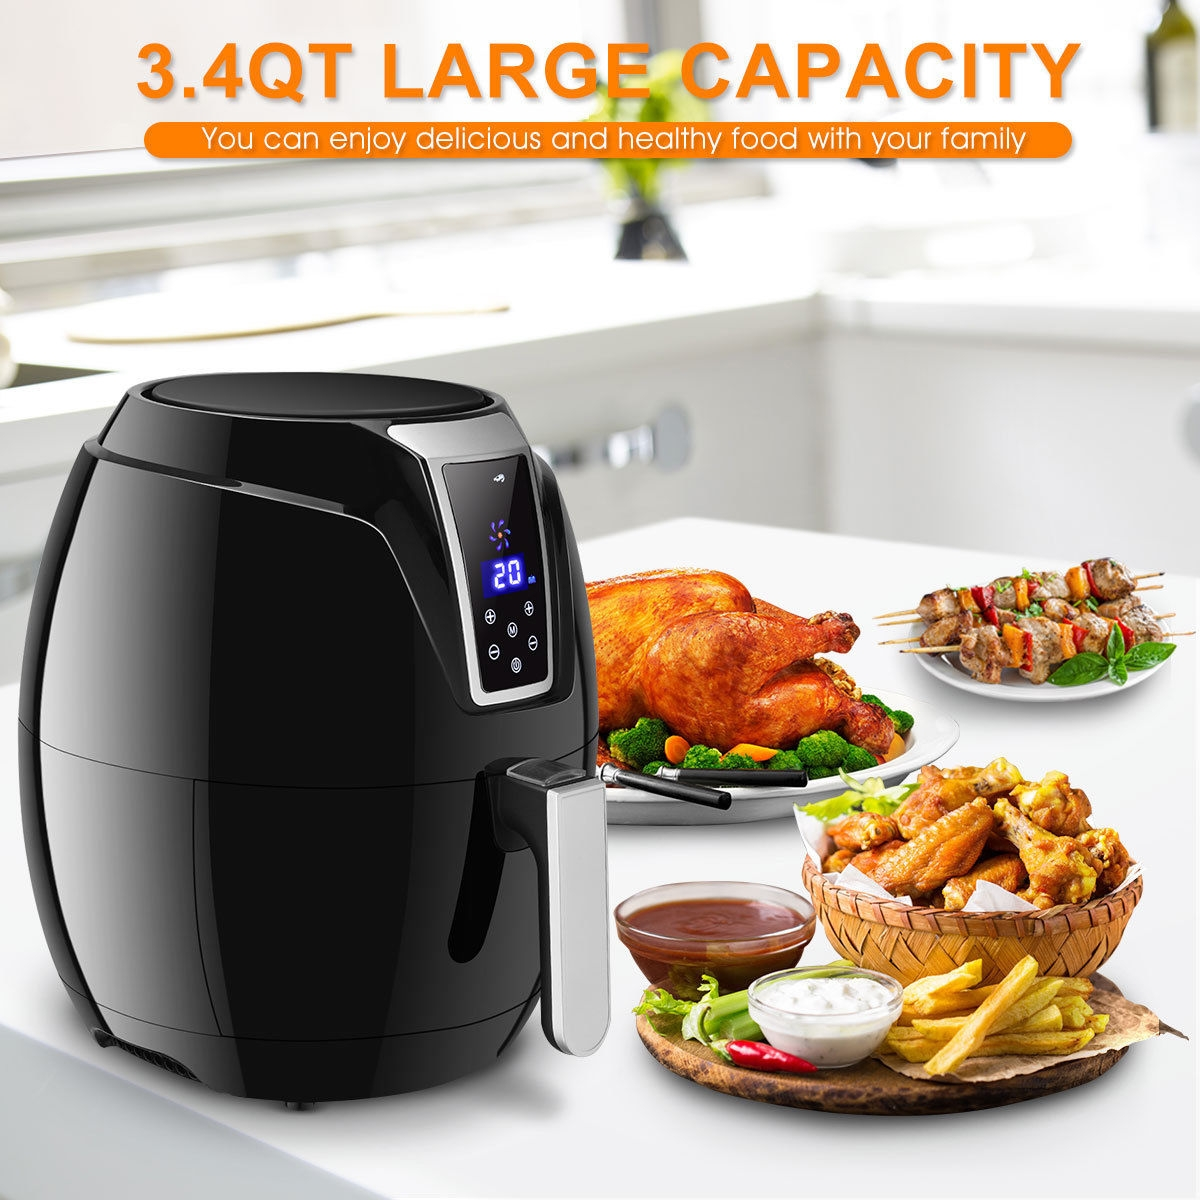 1400W 3.4Qt Time Control Touch LCD Electric Air Fryer